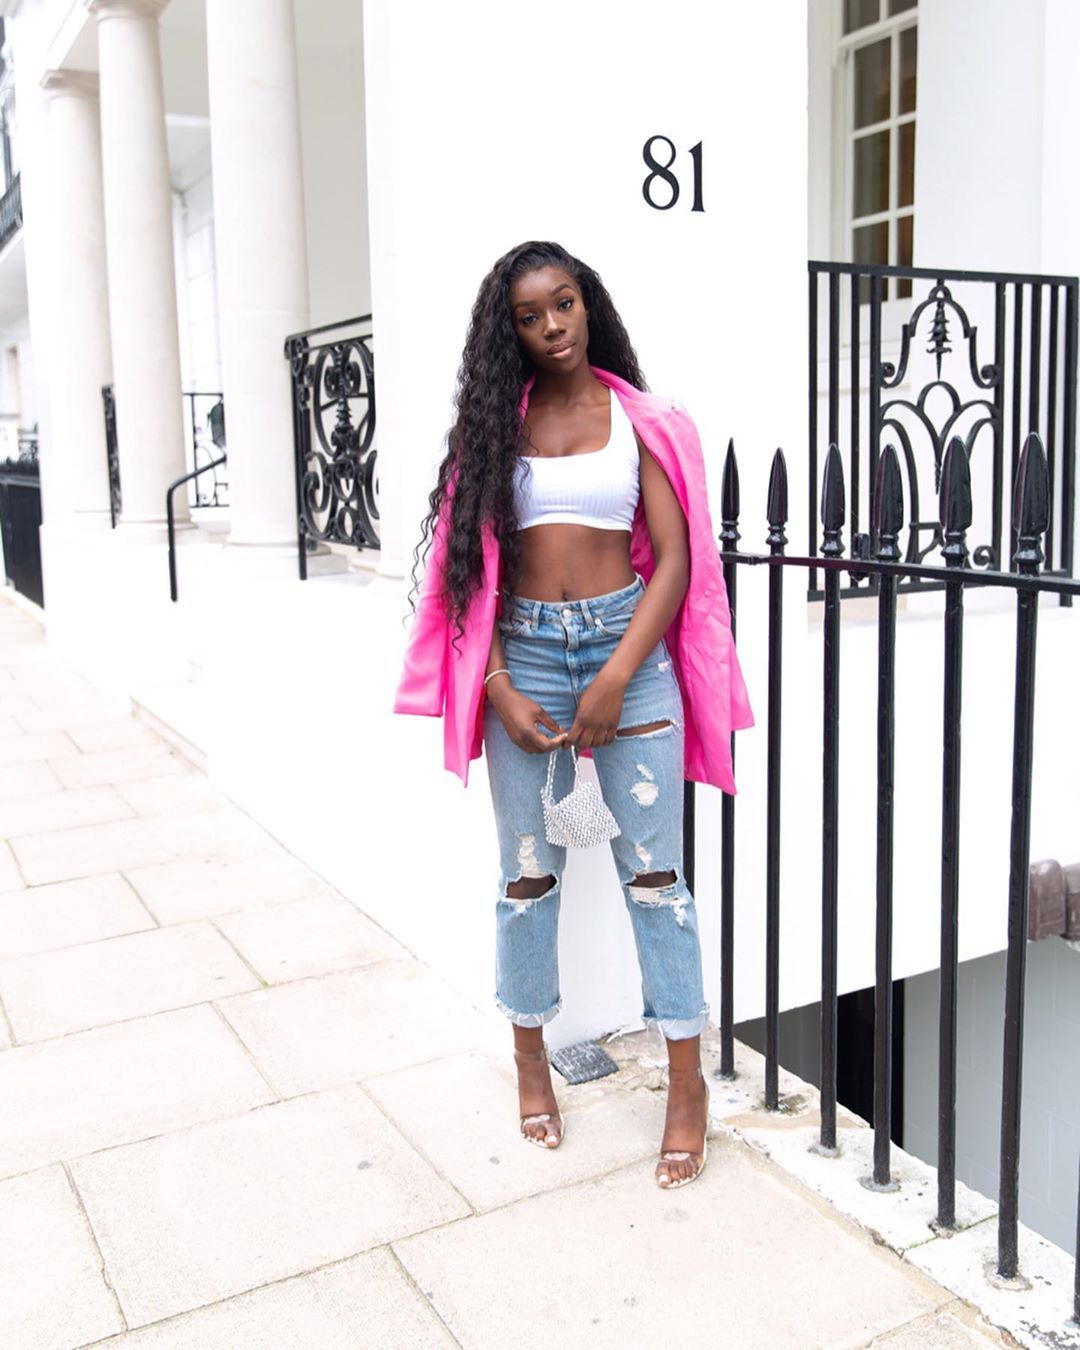 Image may contain: Love Island Instagrams, Love Island, Instagram, followers, ranking, 2019, Yewande, Jeans, Denim, Shorts, Person, Human, Pants, Clothing, Apparel